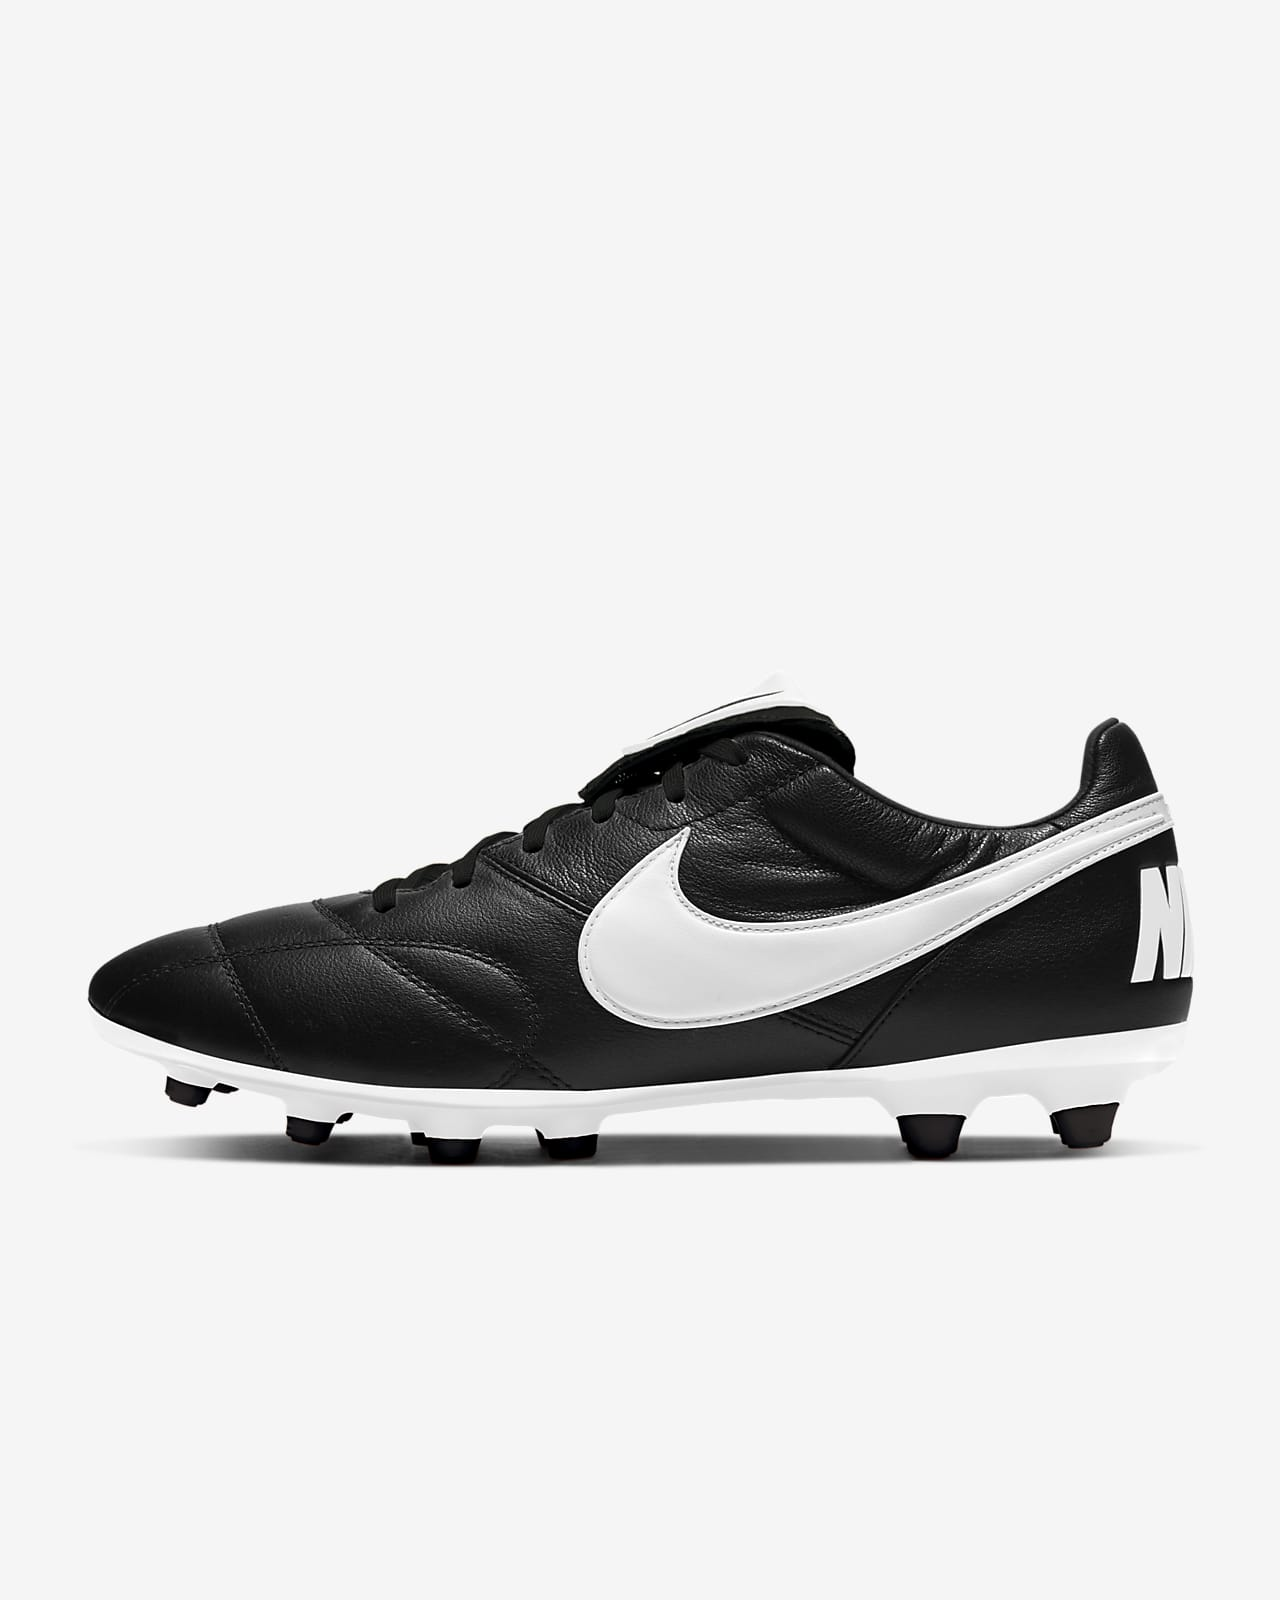 Nike Premier II FG Firm-Ground Football Boot